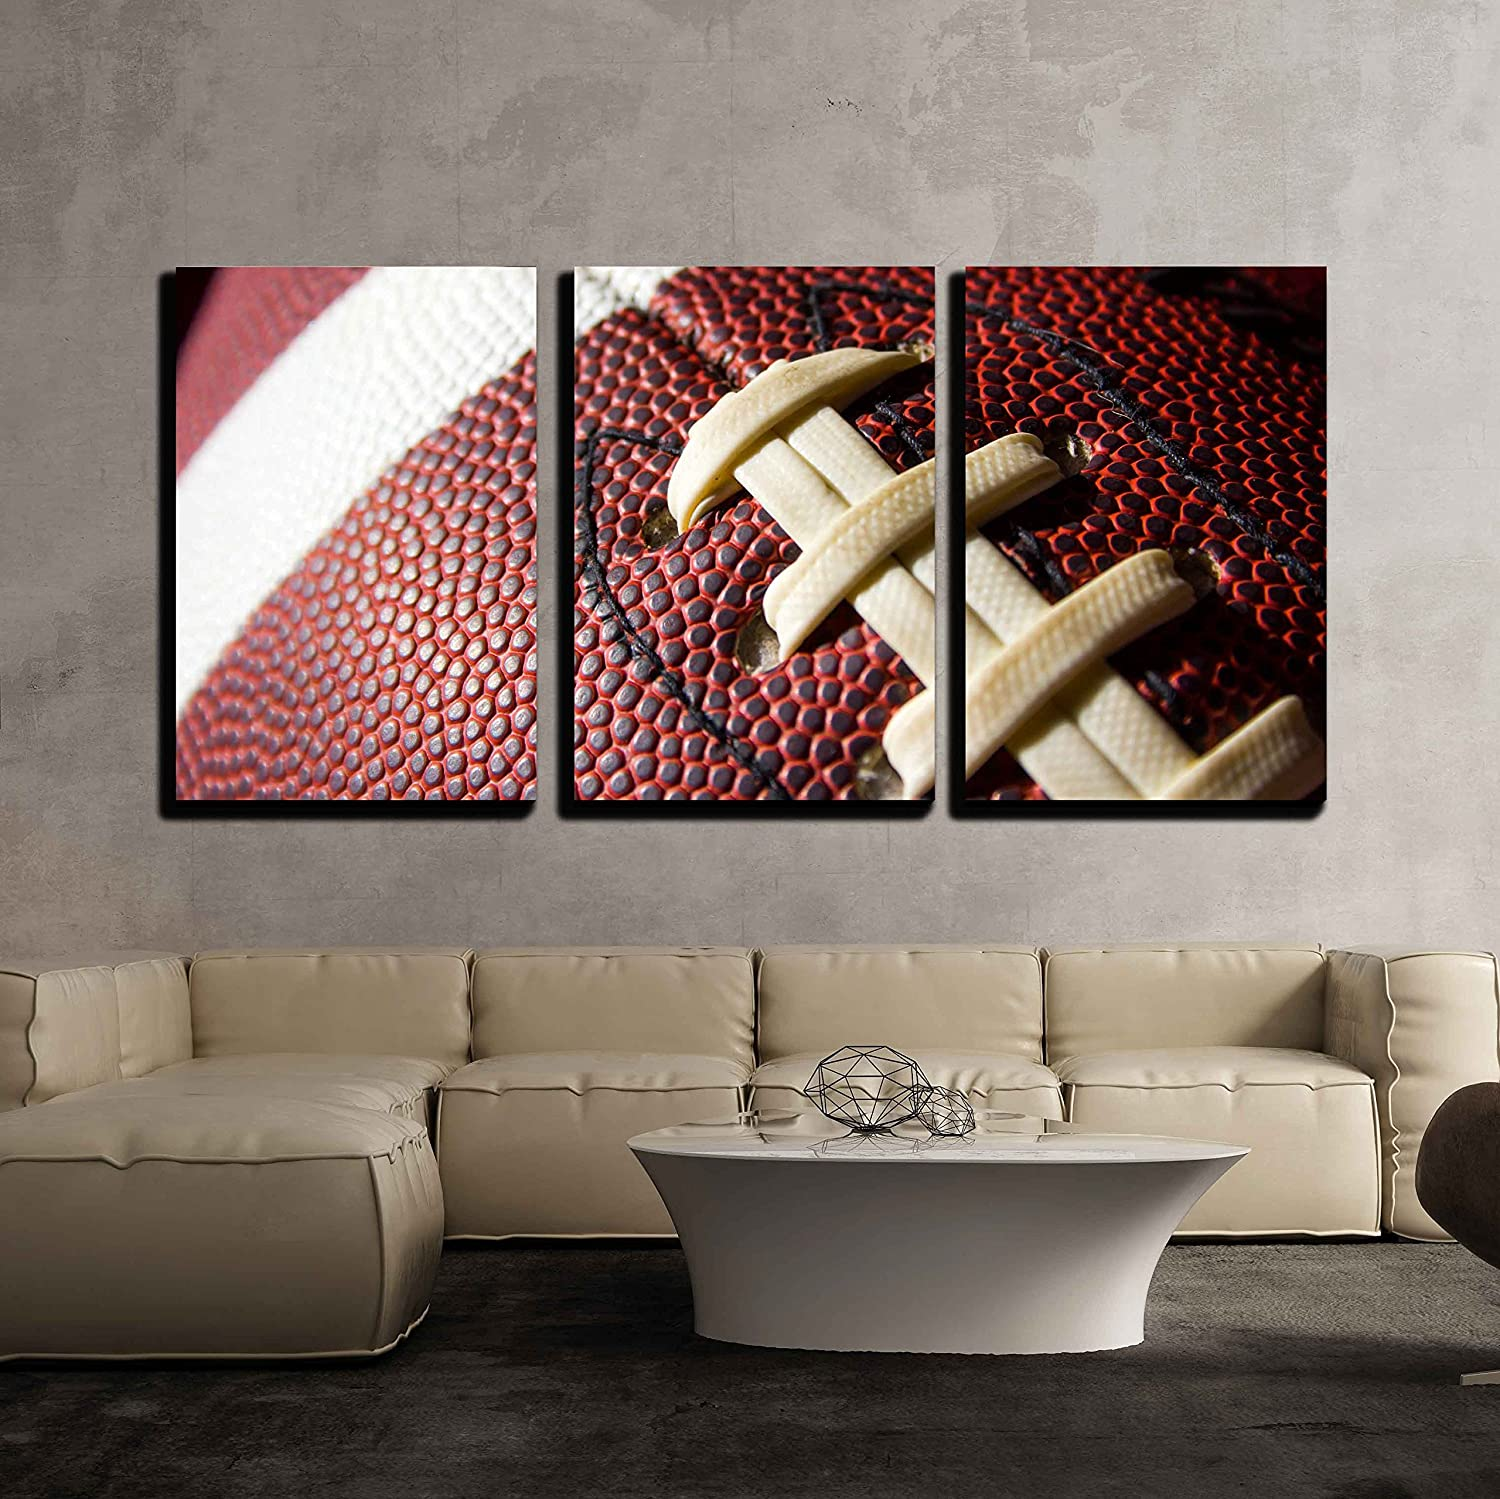 wall26 - 3 Piece Canvas Wall Art - Football Ball - Modern Home Art Stretched and Framed Ready to Hang - 24x36x3 Panels